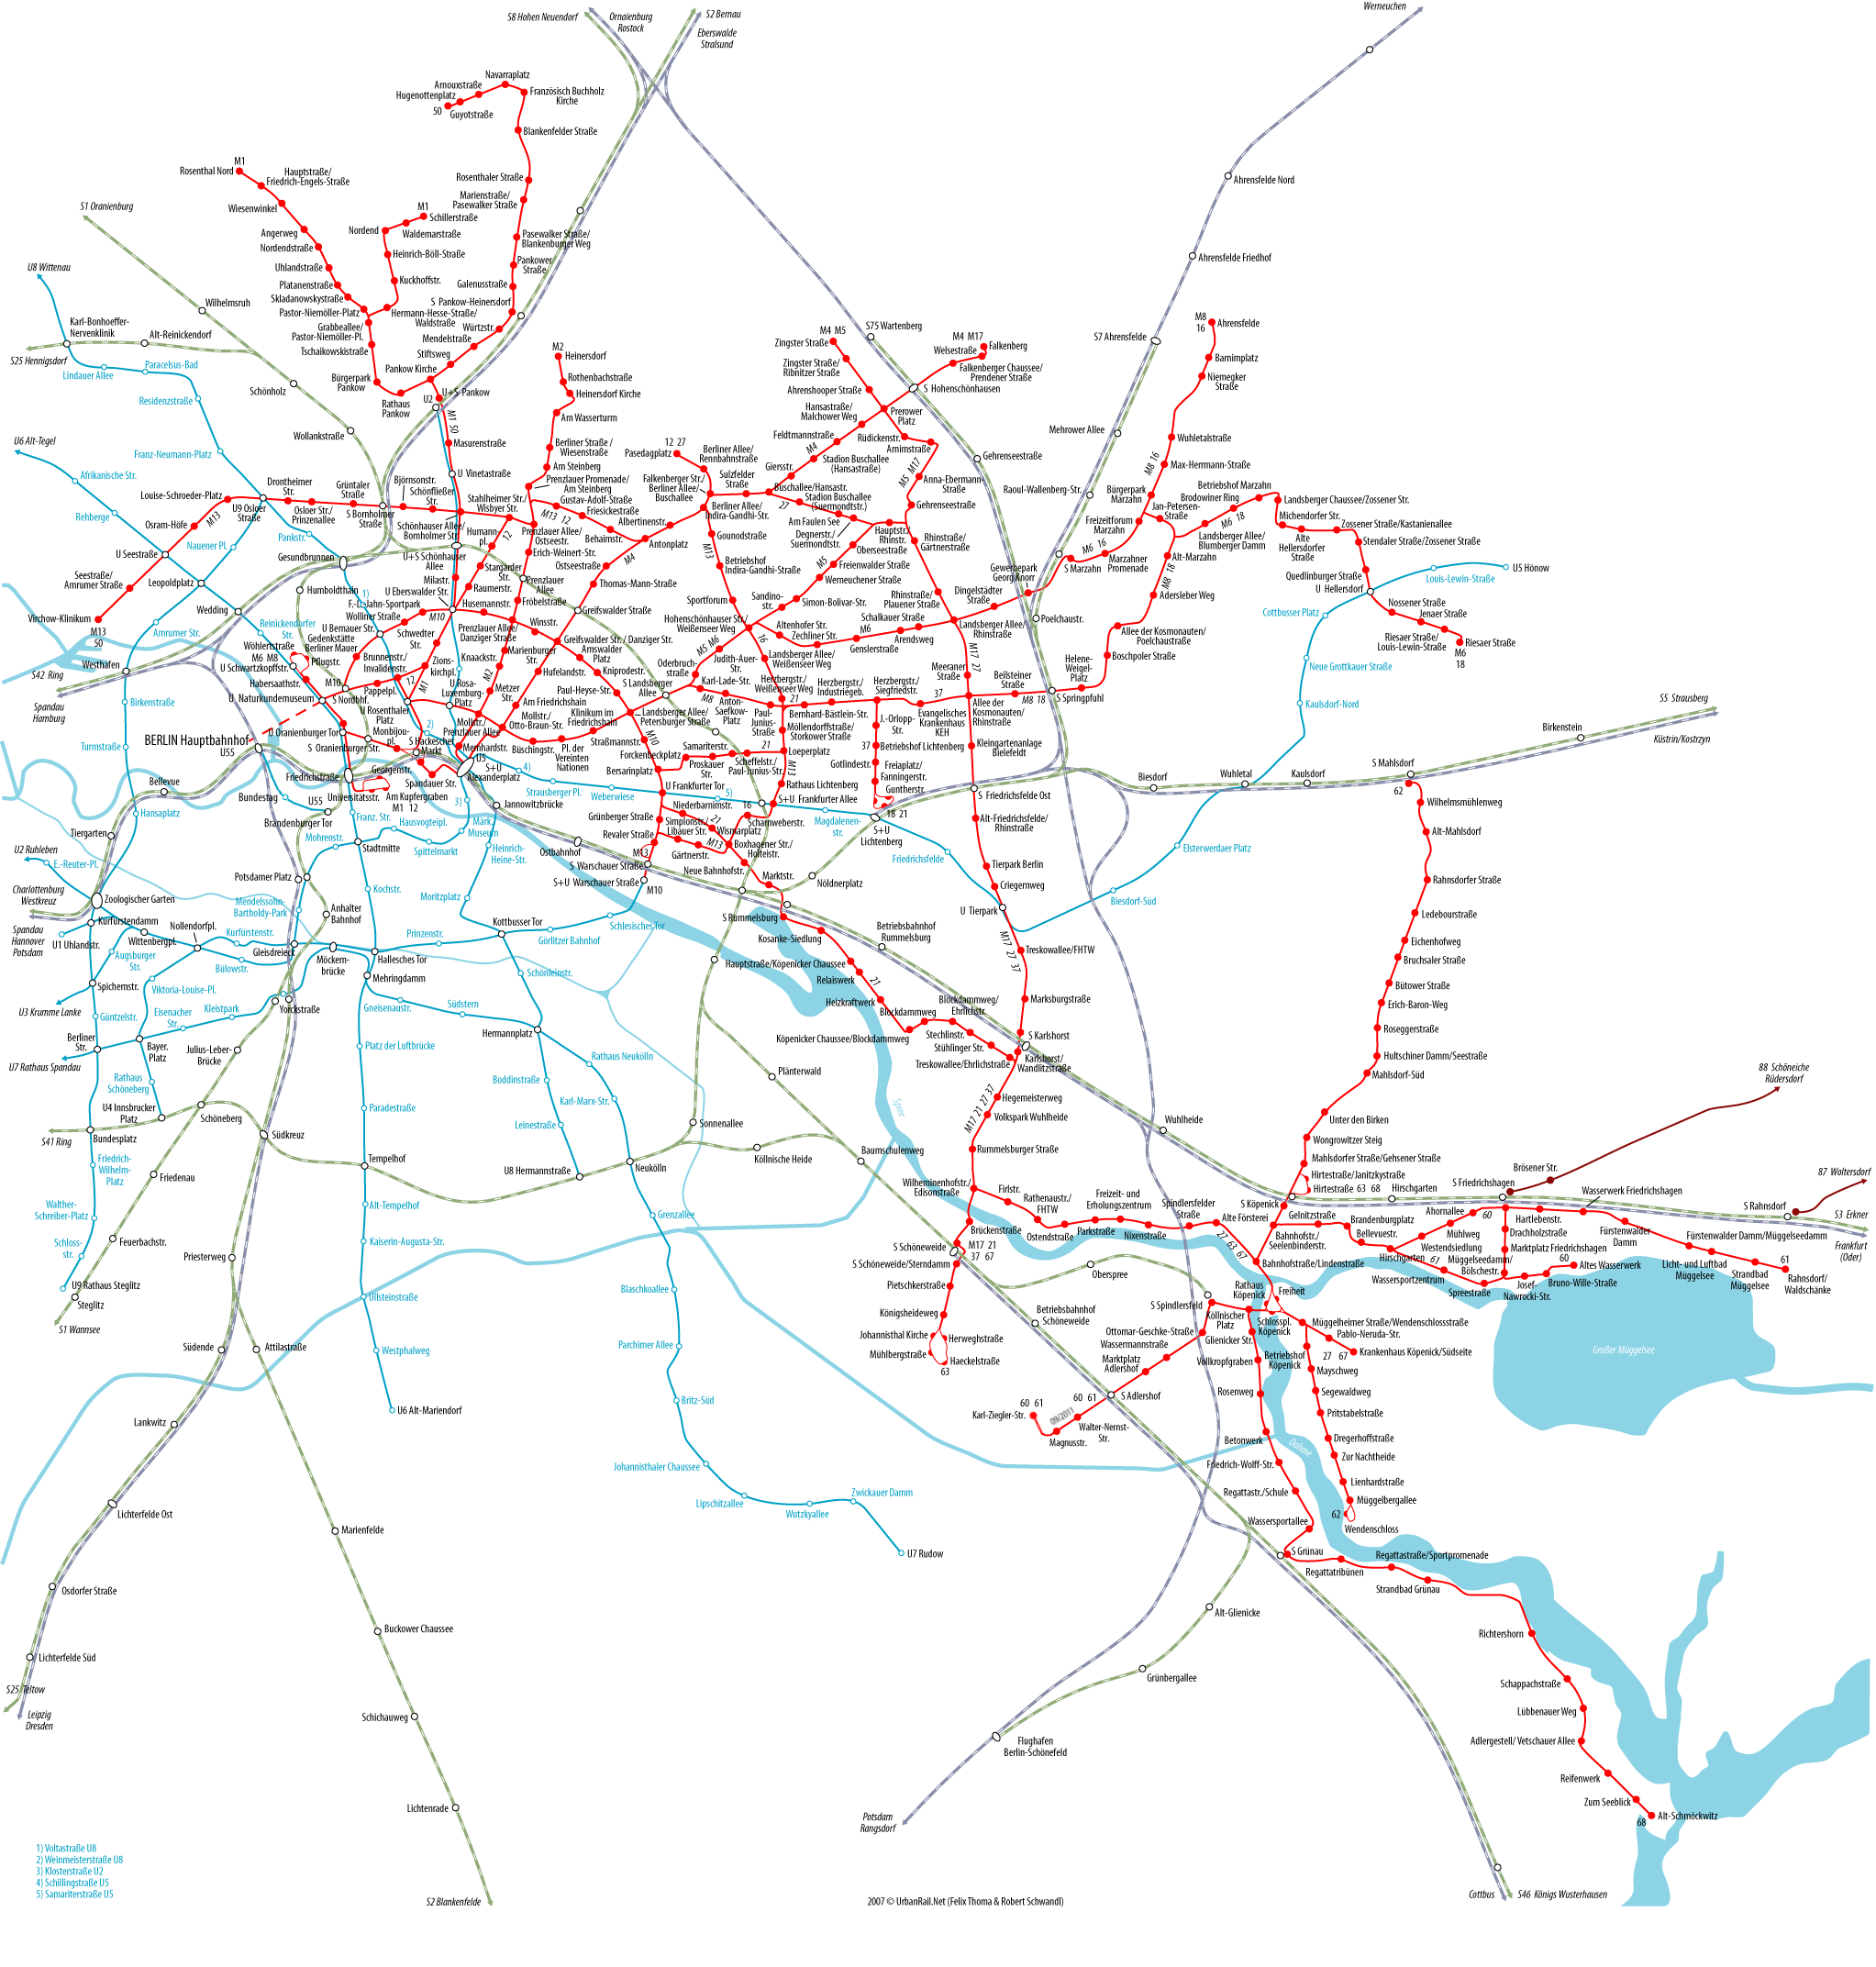 Tram map of Berlin